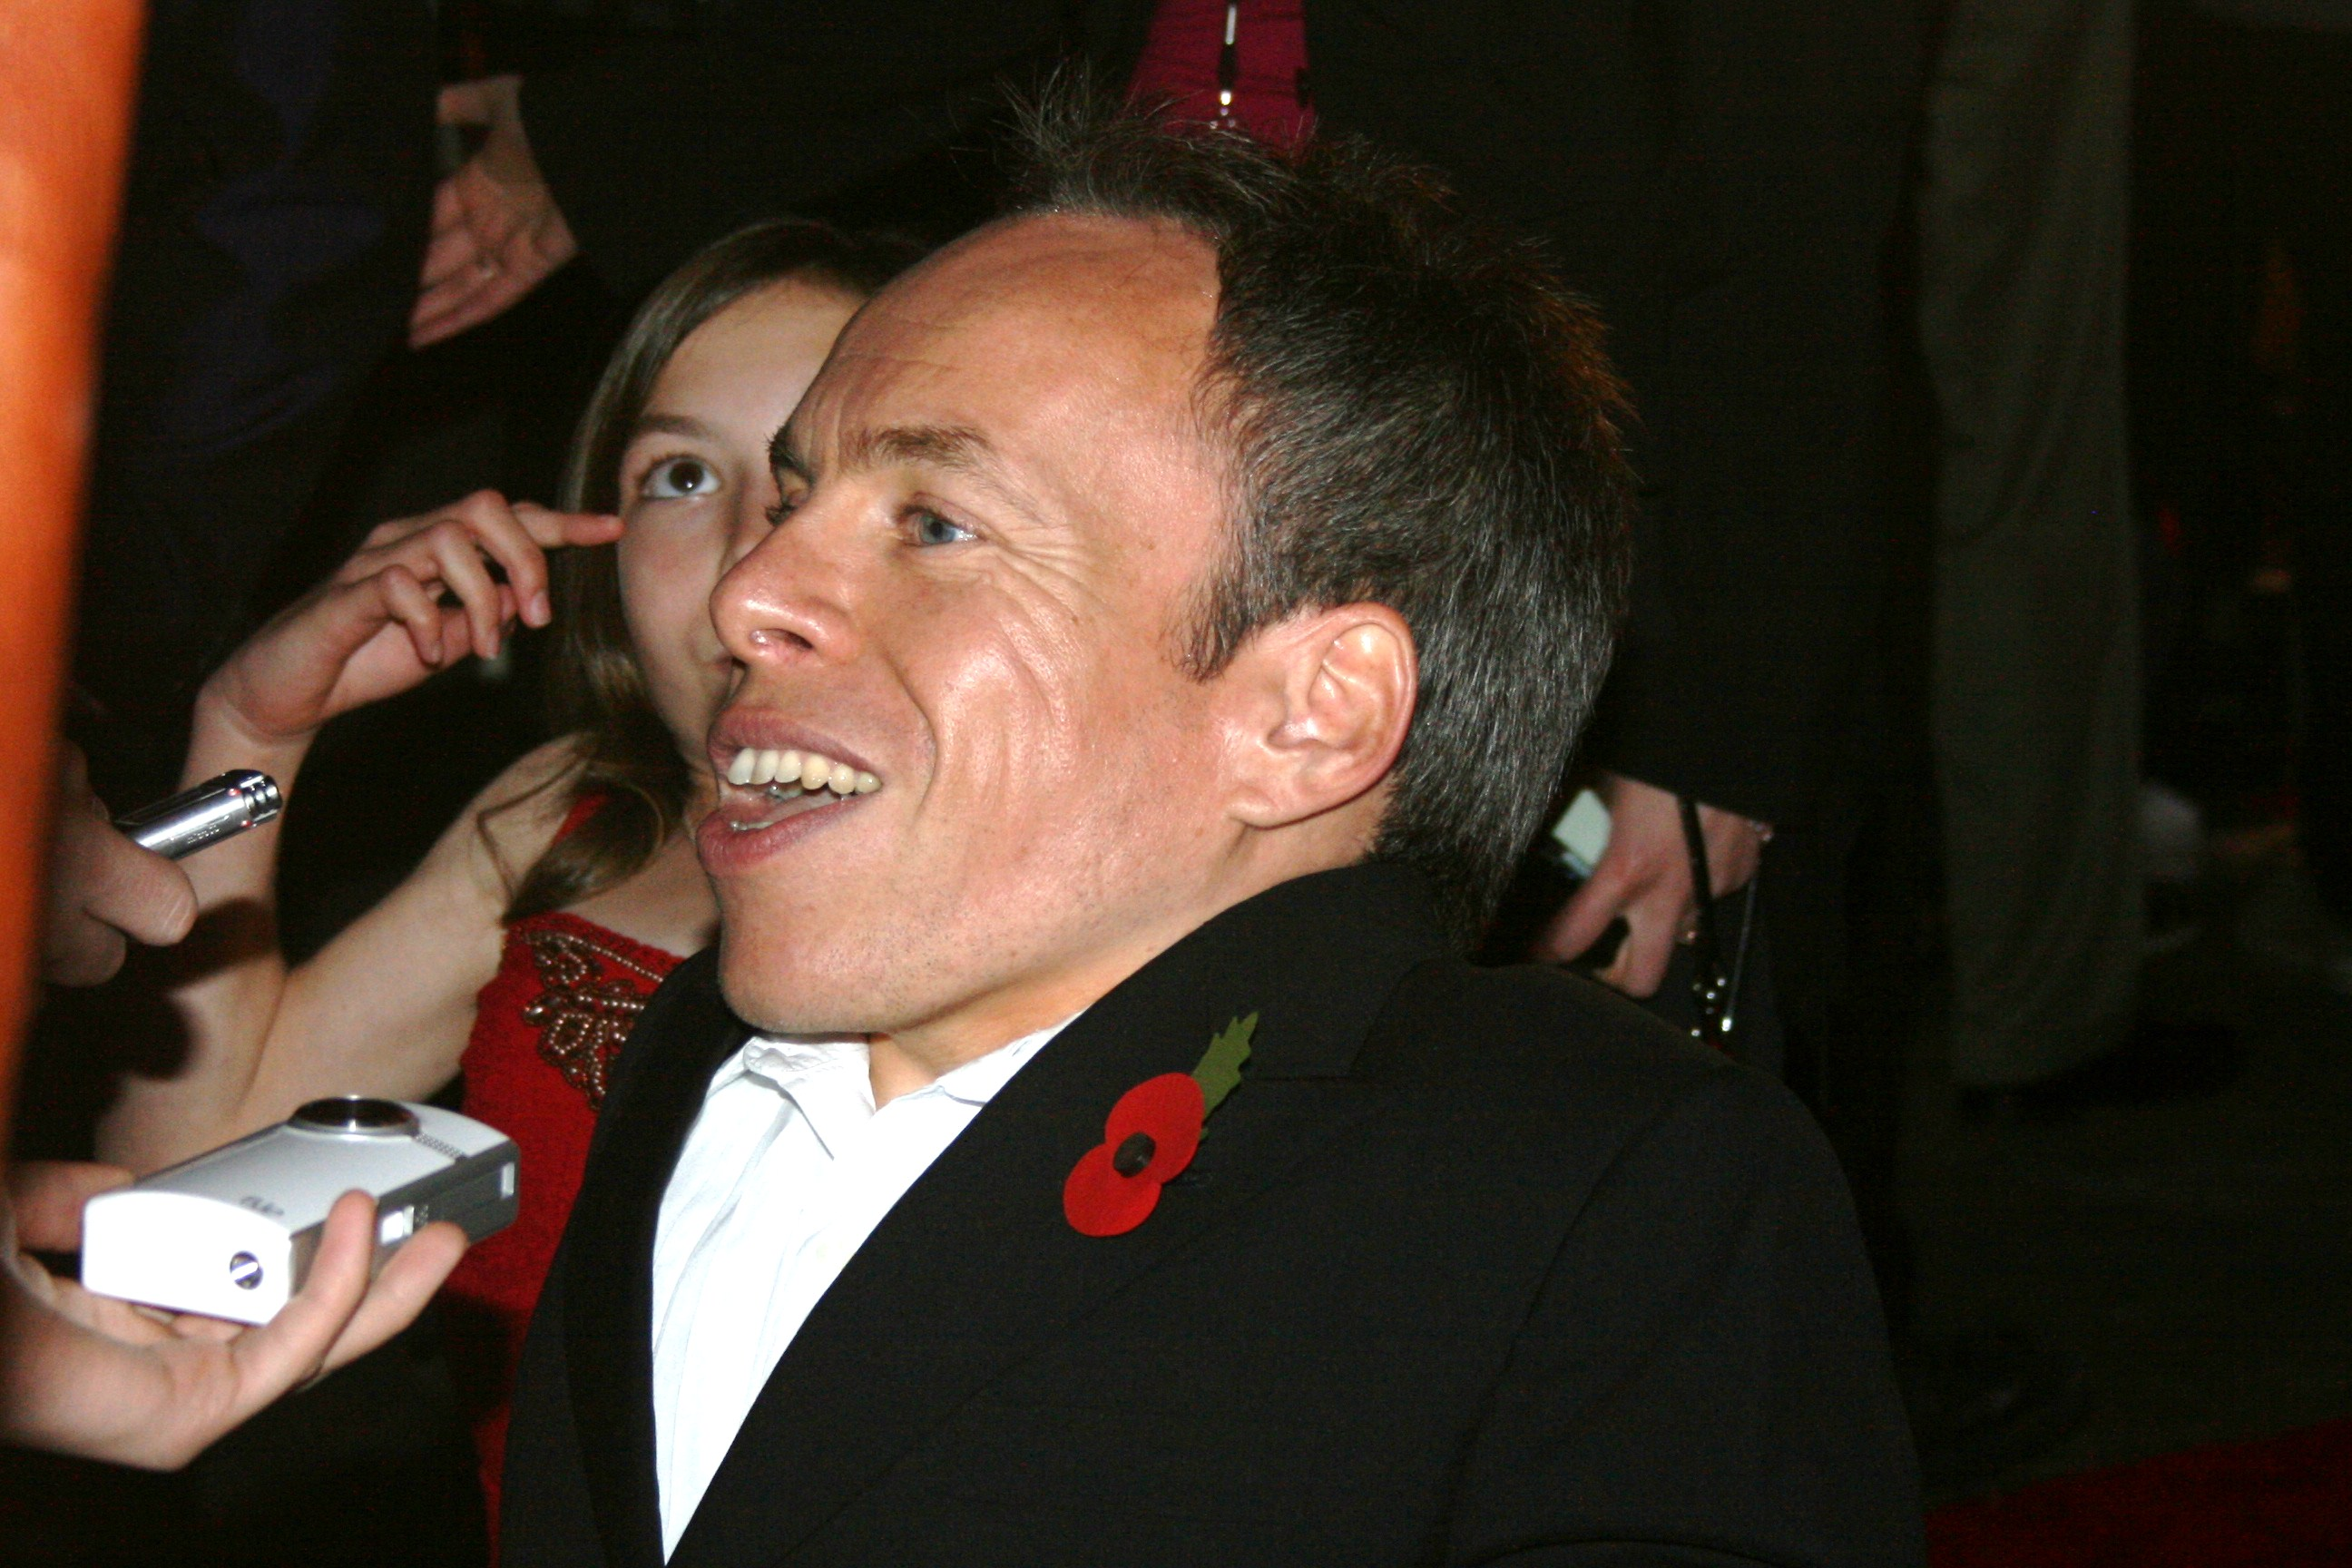 Warwick Davis Professor Flitwick Griphook Beyond The